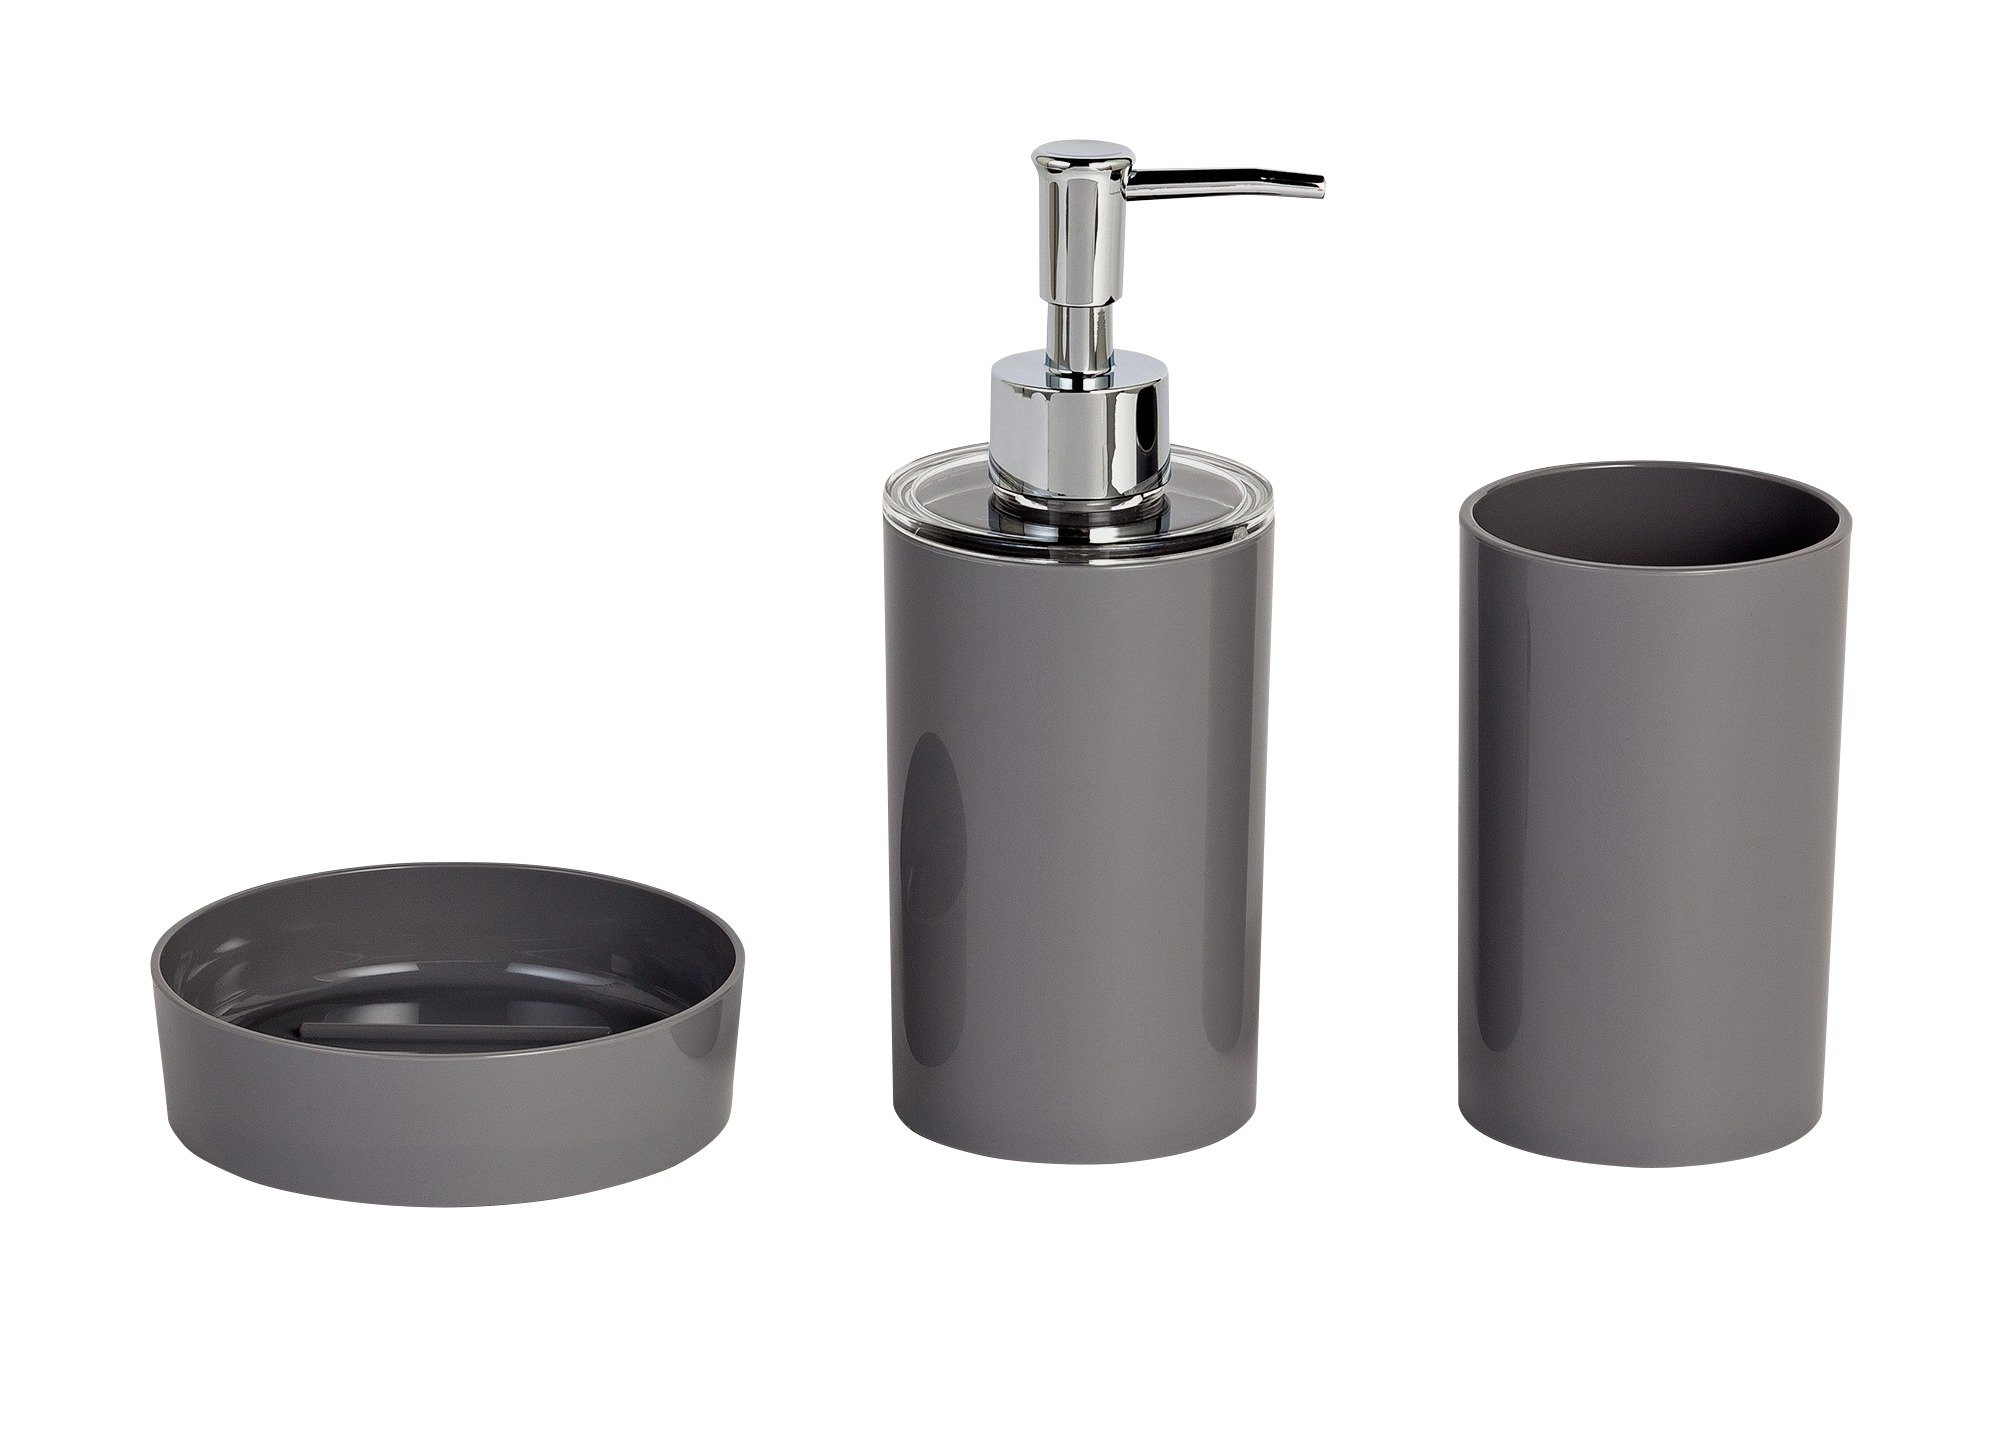 Image of ColourMatch 3 Piece Bathroom Accessory Set - Flint Grey